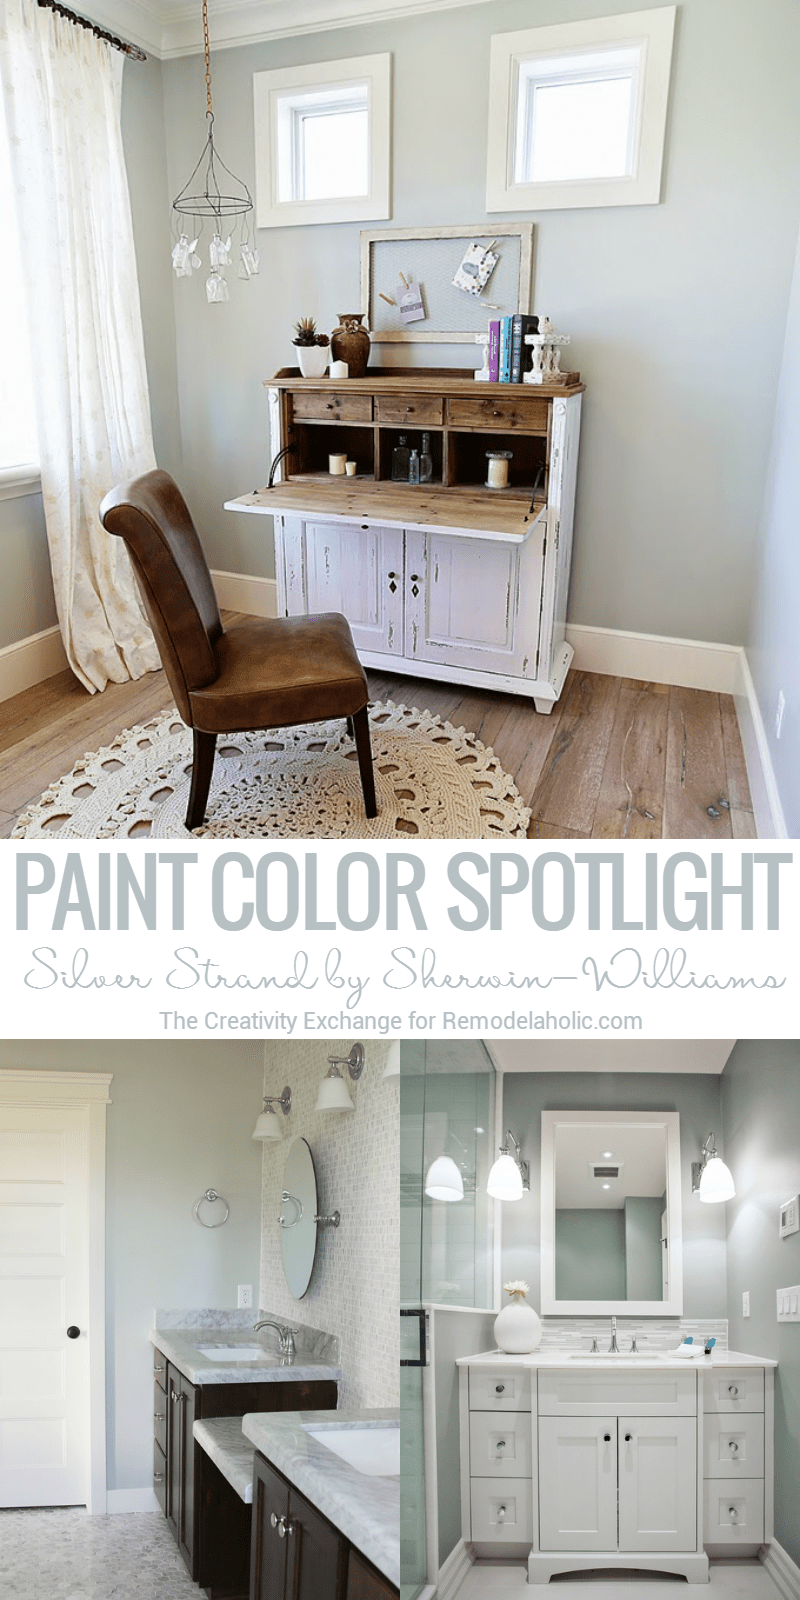 Remodelaholic | Color Spotlight: Silver Strand by Sherwin-Williams